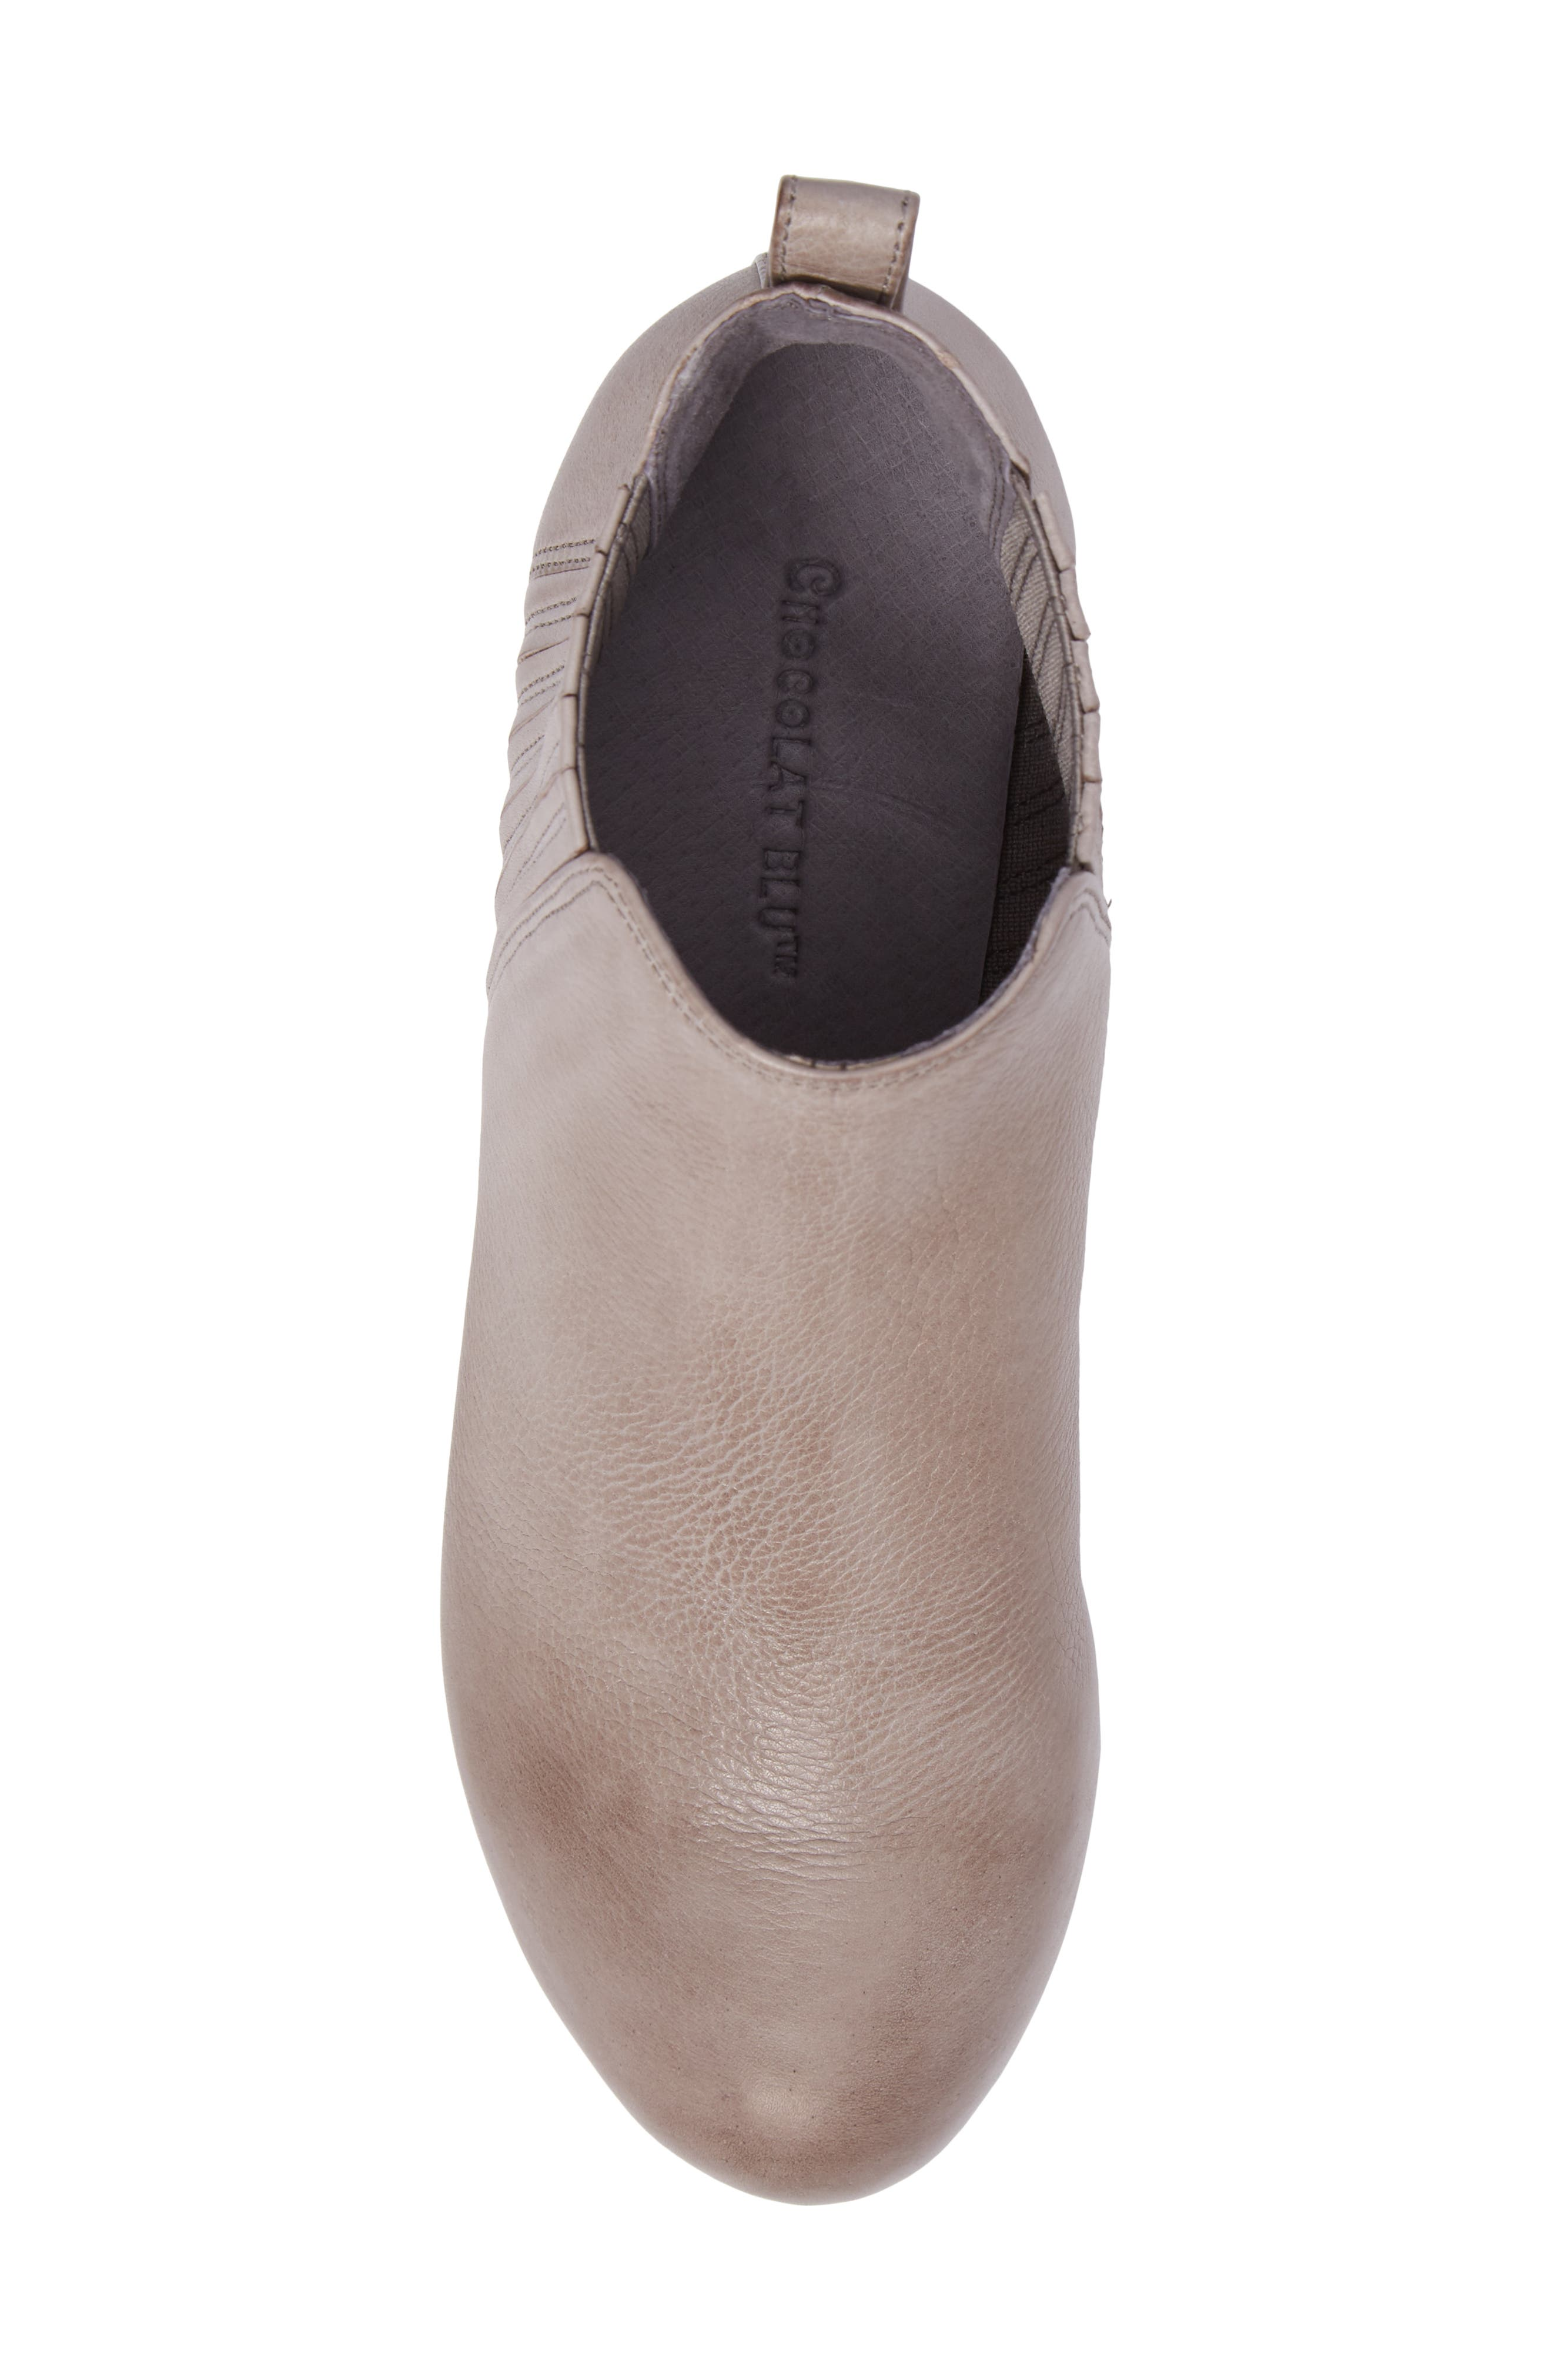 Walden Wedge Bootie,                             Alternate thumbnail 5, color,                             GREY LEATHER